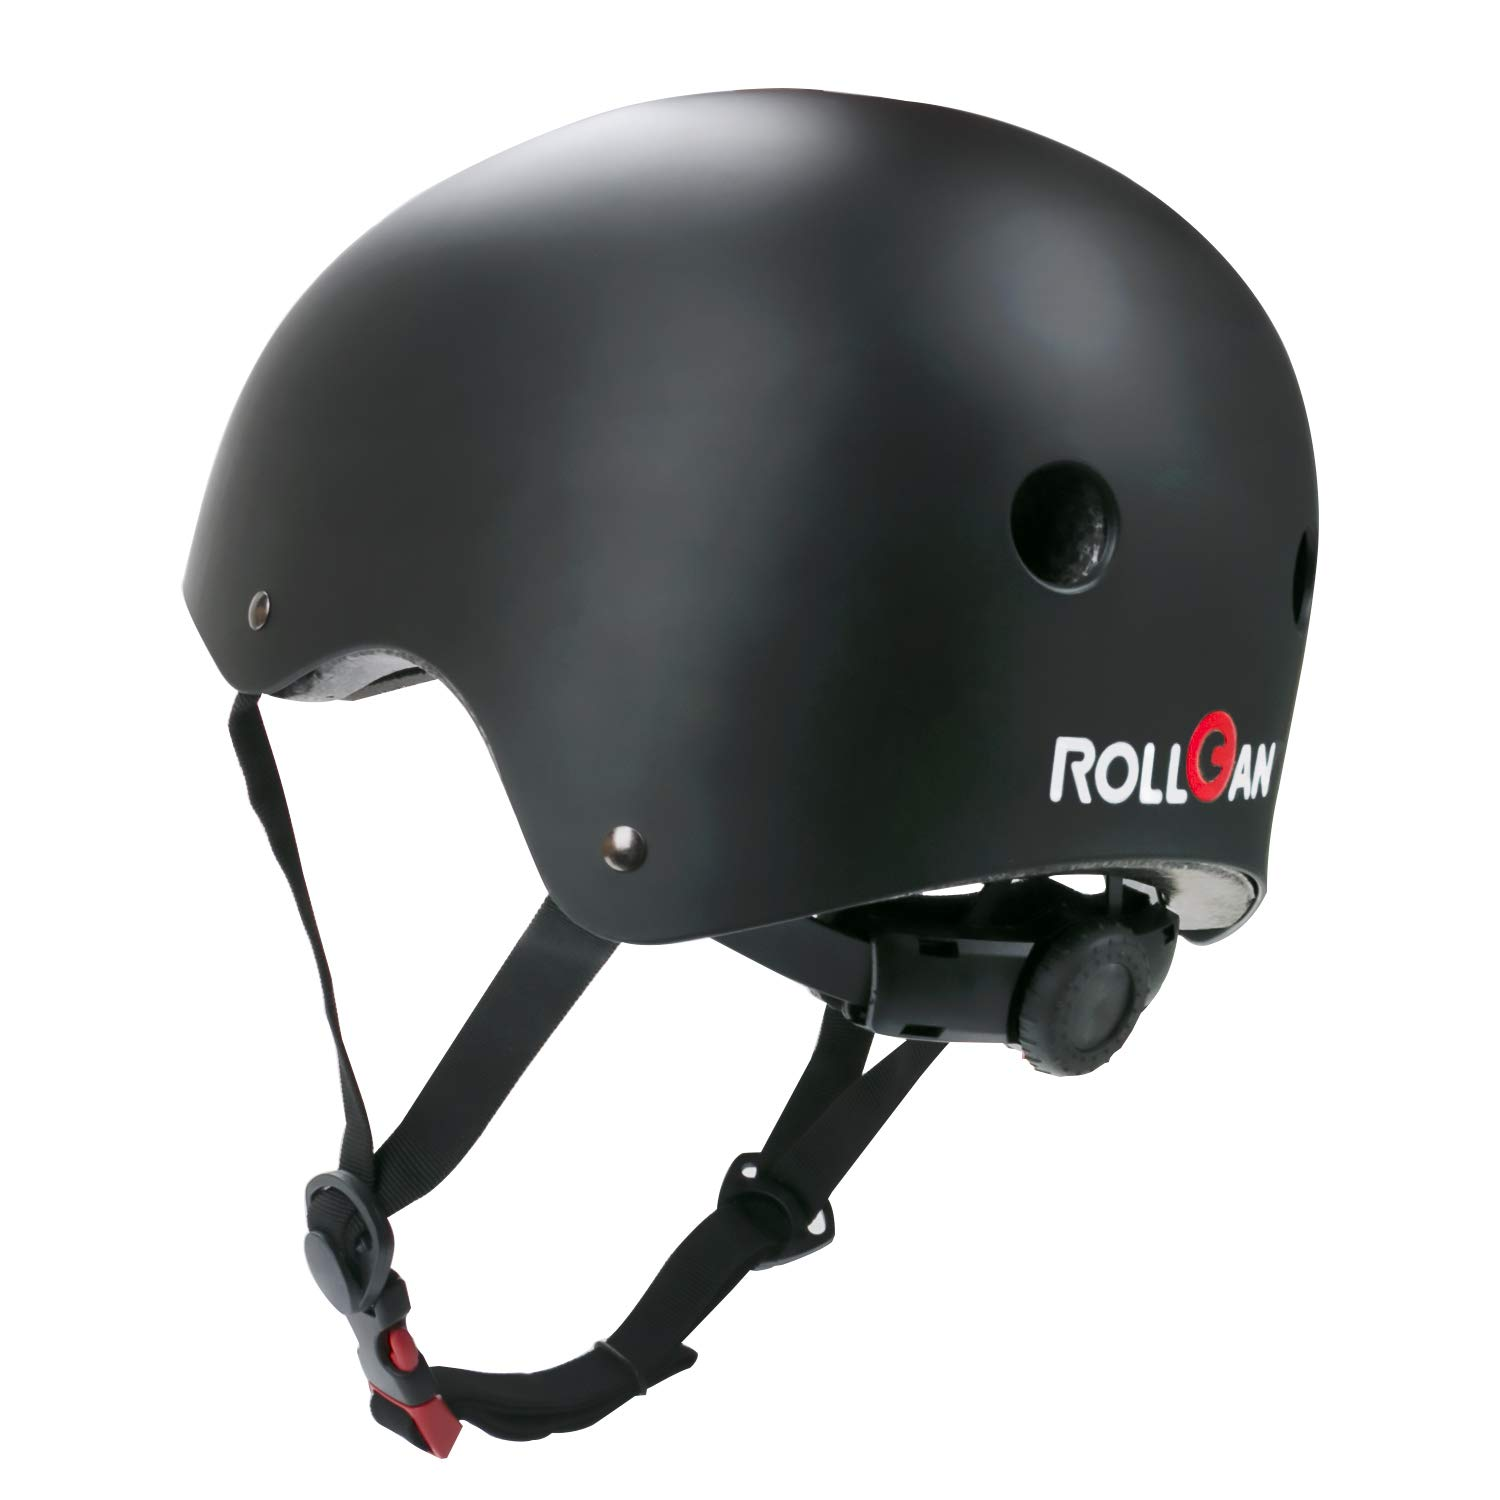 Rollgan Multipurpose Tough Sports Black Helmet CPSC for Skateboarding/Rollerskating/Biking/Cycling/Commuting/Scooter Size L(22.8-24 inches)